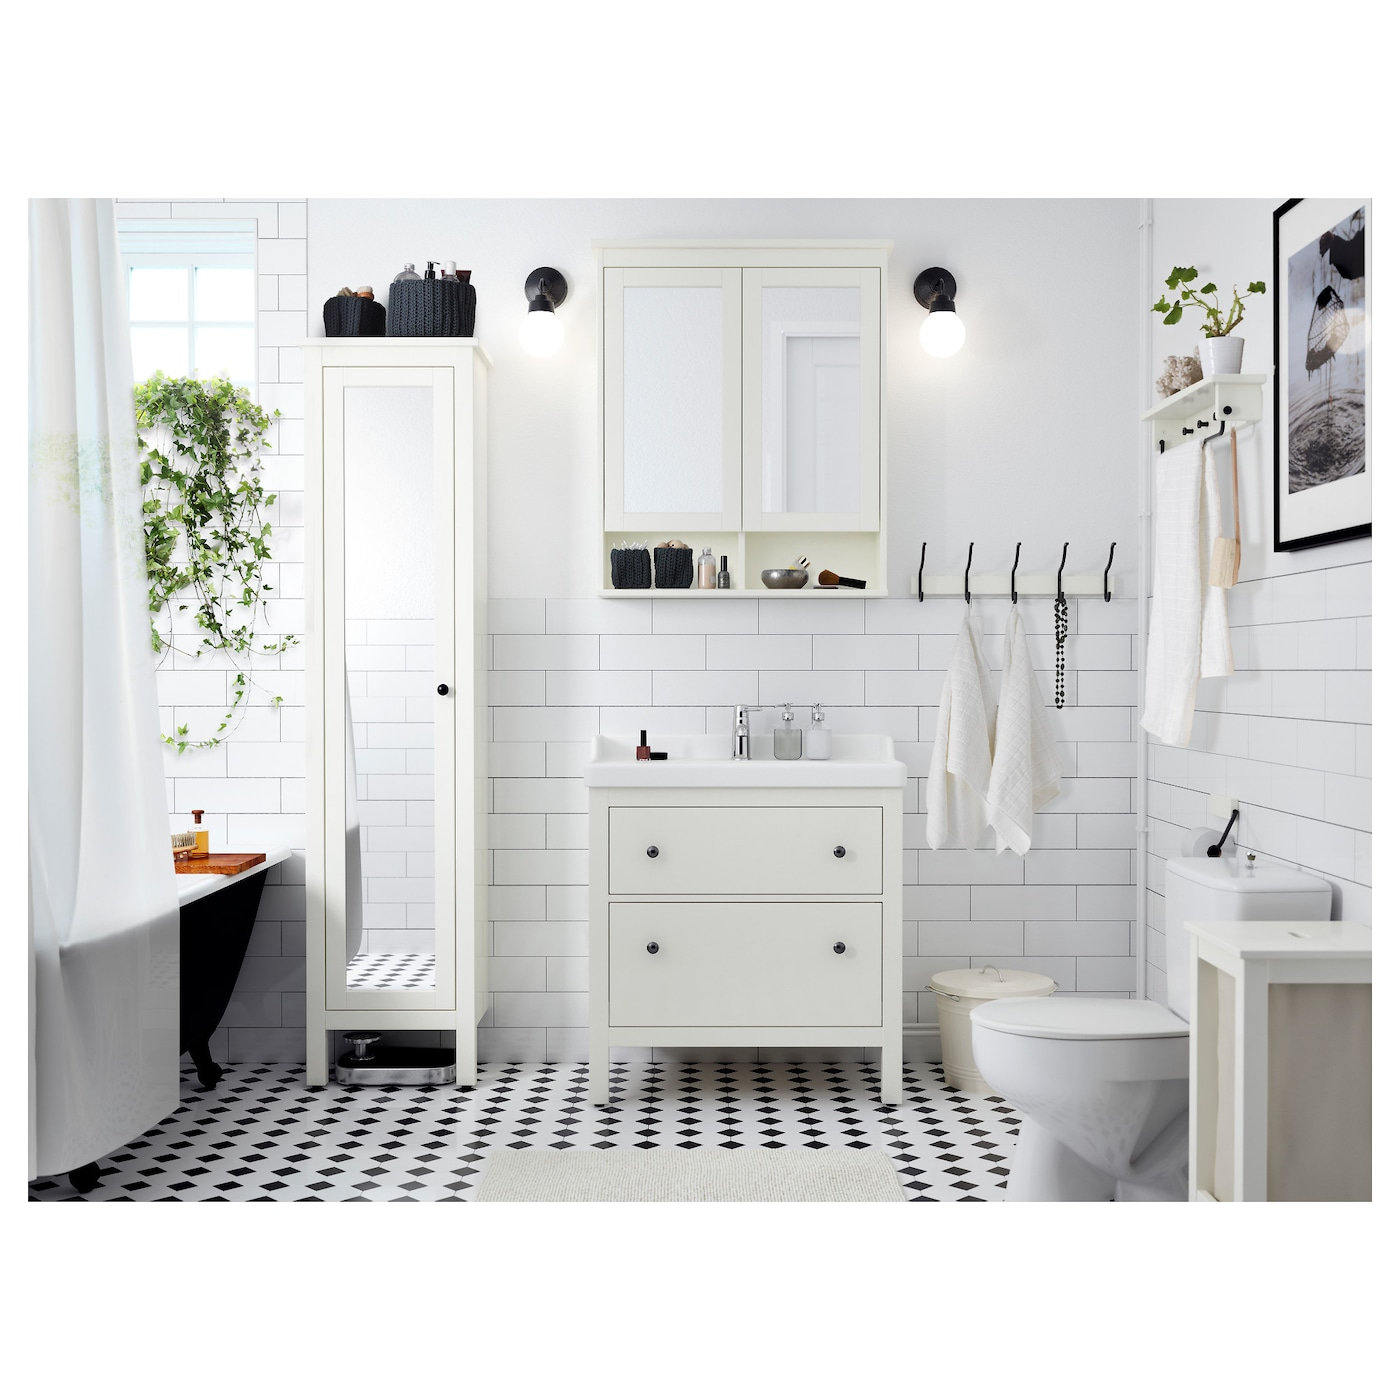 Hemnes mirror cabinet with 2 doors white 83x16x98 cm ikea for Ikea hemnes wohnzimmerserie